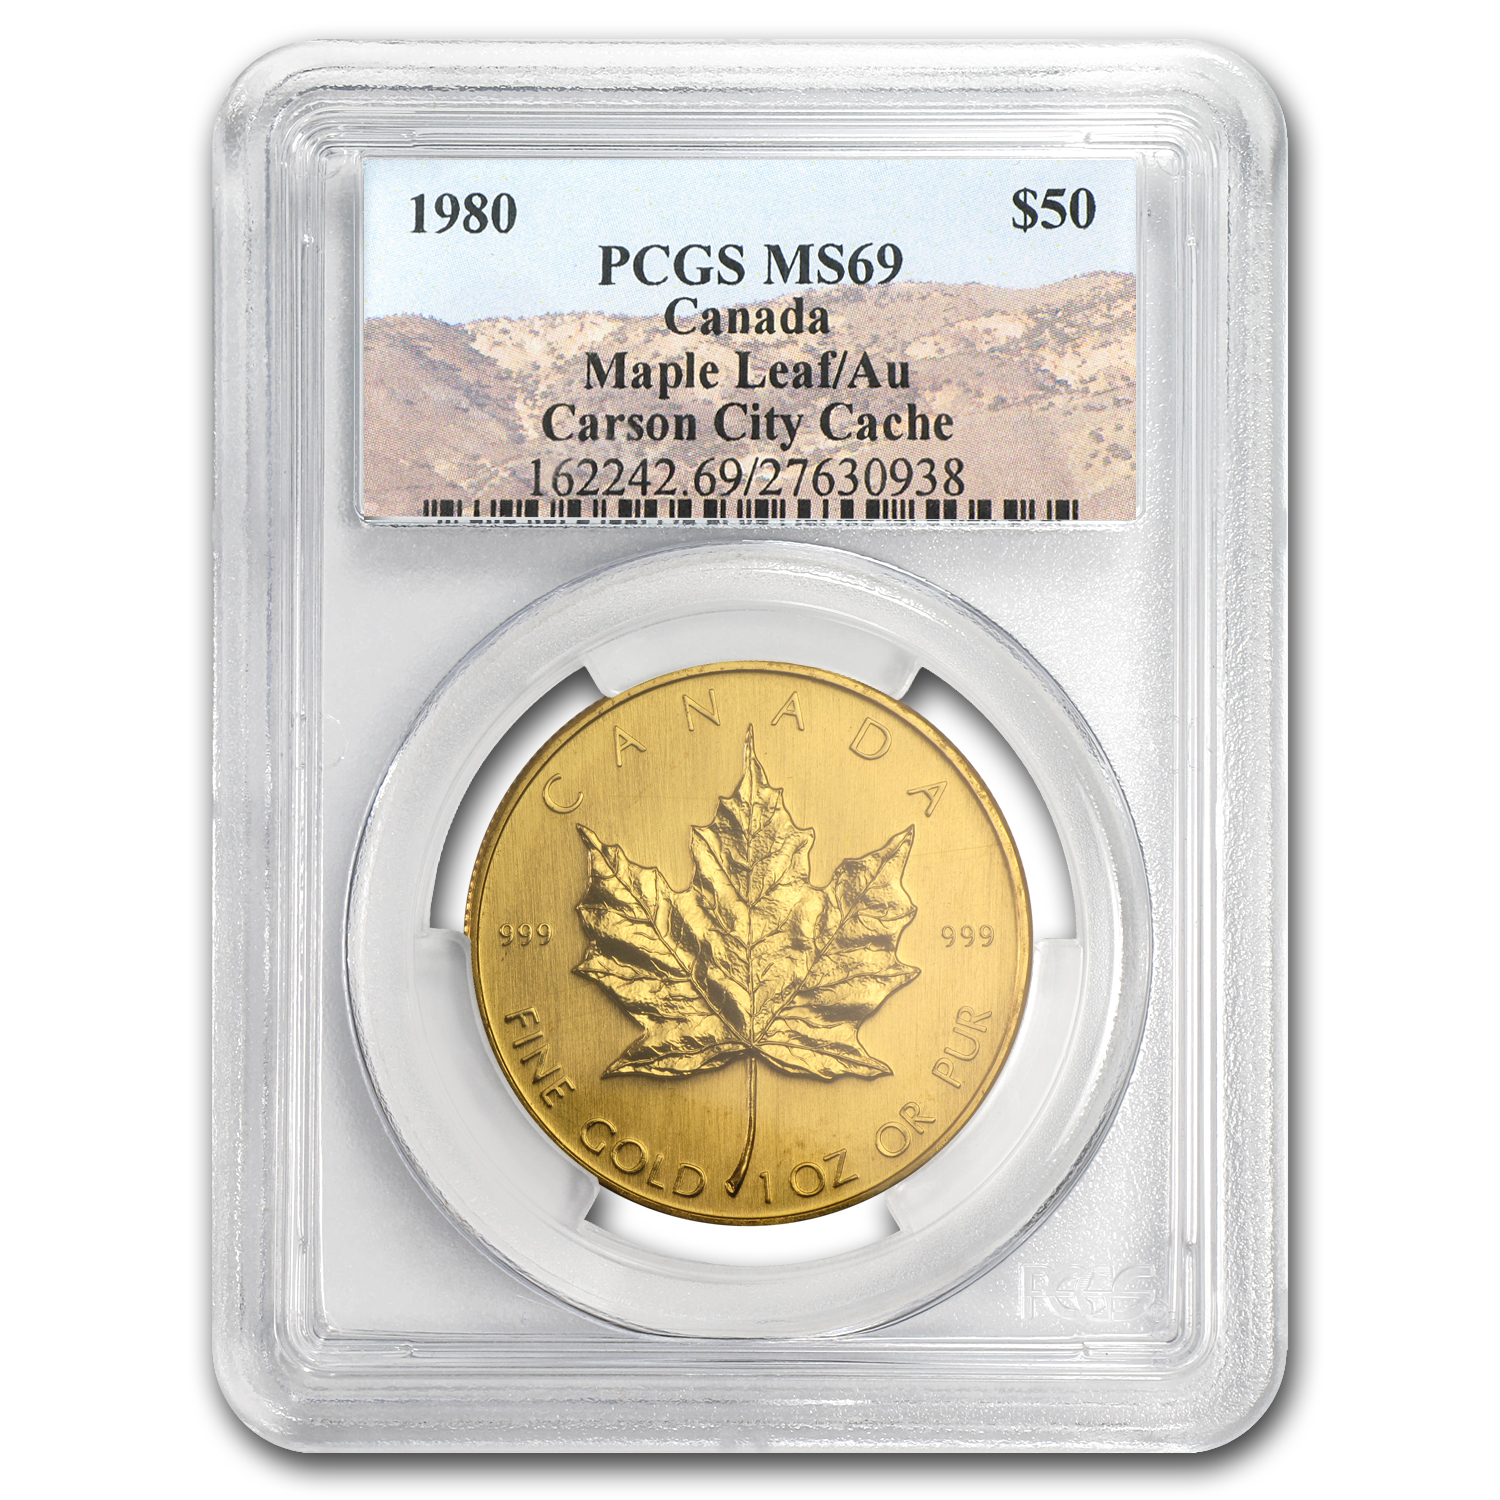 1980 Canada 1 oz Gold Maple Leaf MS-69 PCGS (Carson City Cache)